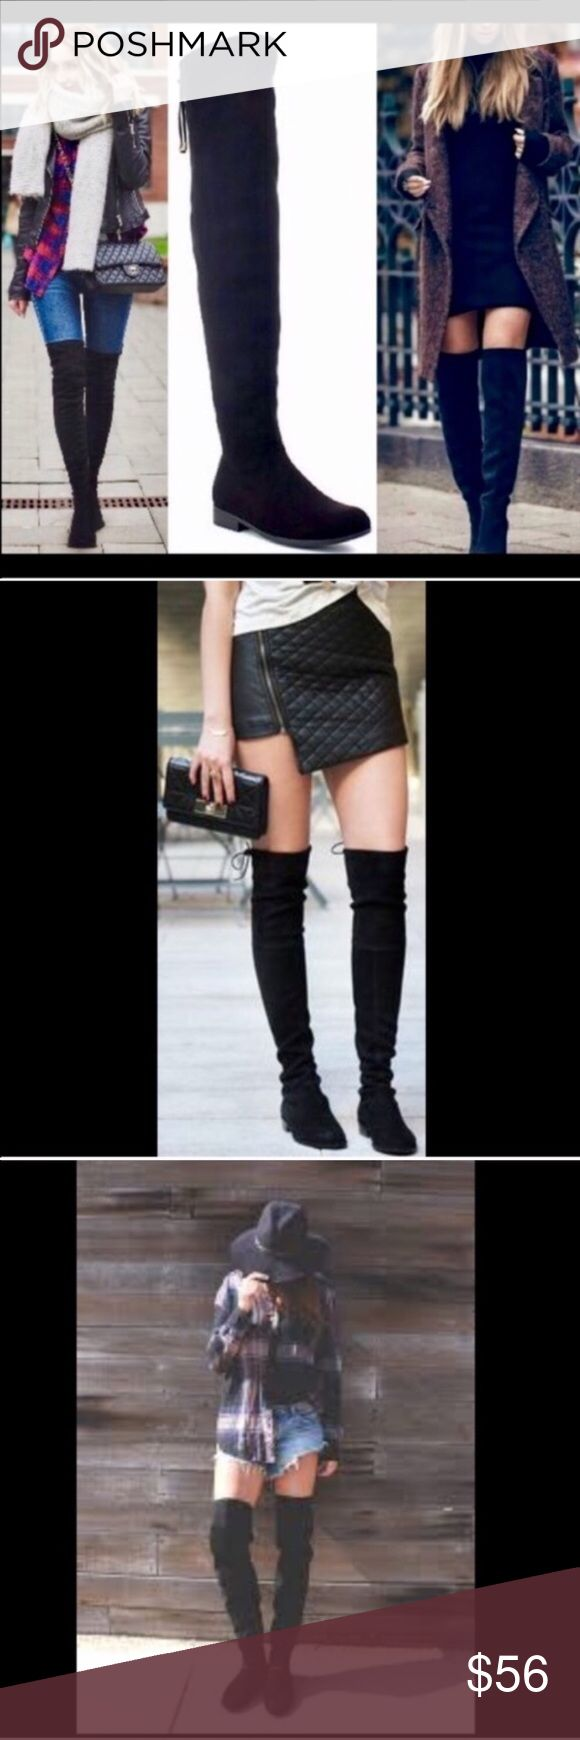 🌟BEST SELLER🌟🖤Black Over-the-Knee Boots Drawstring top. Exceptionally soft faux suede.  Inside zipper runs from foot to mid lower leg. Slightly rounded toe. Fits true to size. Center image of covershot and image 4 of actual boots. As with all merchandise, seller not responsible for fit nor comfort. Brand new retail. No trades, no off App transactions or negotiations.  ❗️PRICE IS FIRM UNLESS BUNDLED❗️ Leoninus Shoes Over the Knee Boots